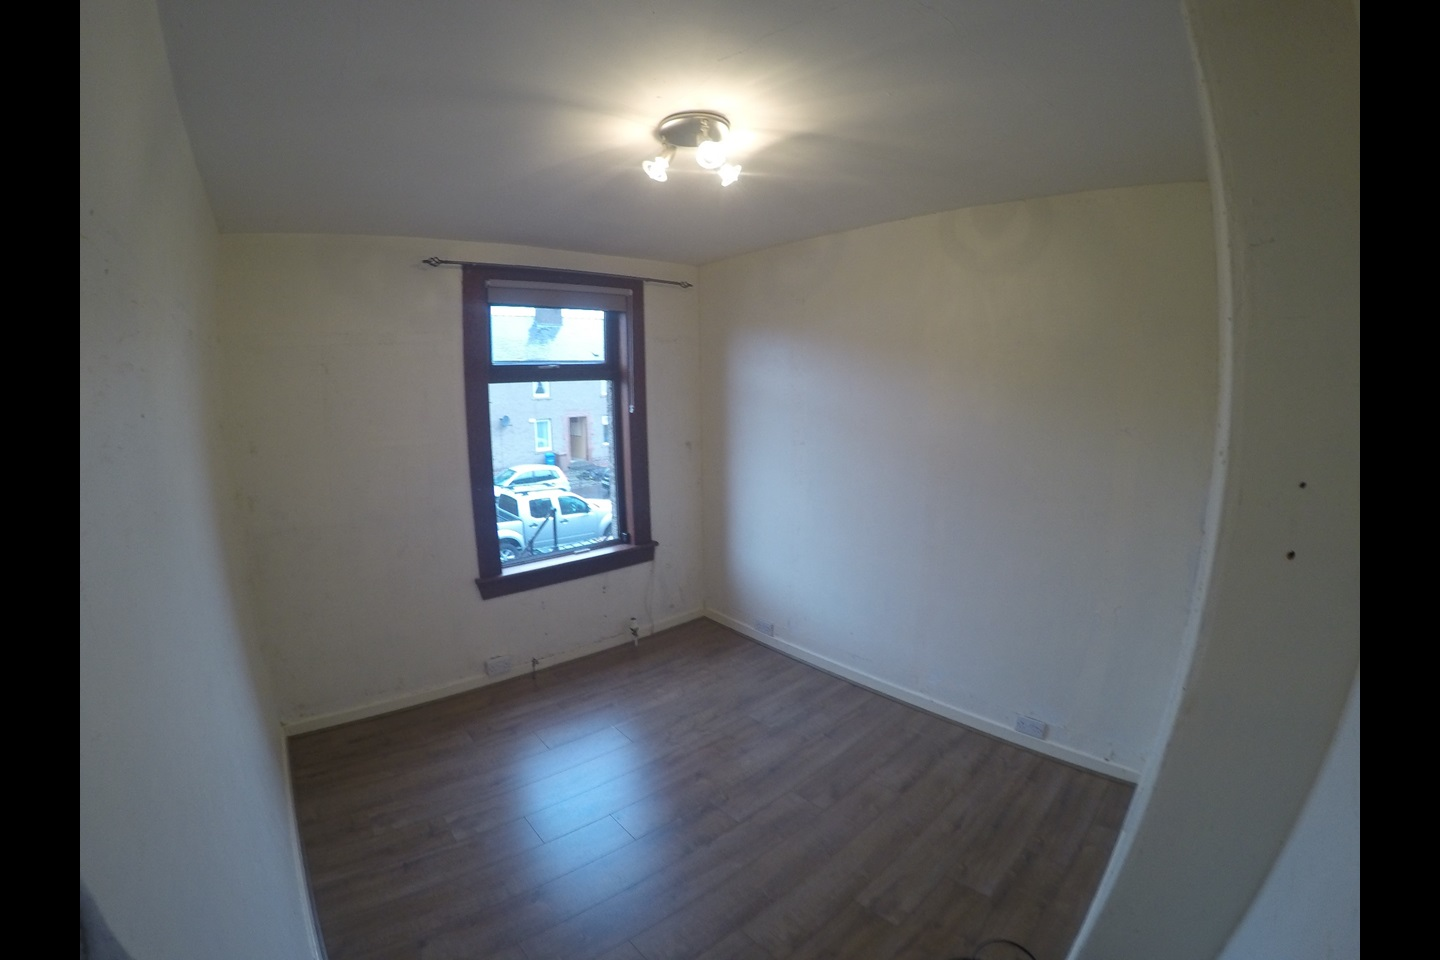 Dundee - 2 Bed Flat, Kerrsview Terrace, DD4 - To Rent Now ...